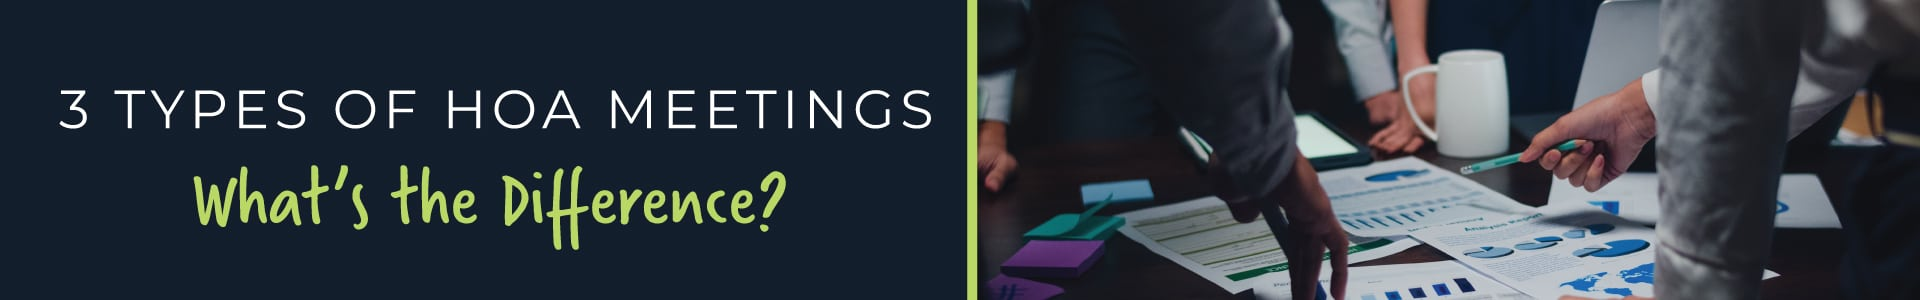 3 Types of HOA Meetings - What's the Difference